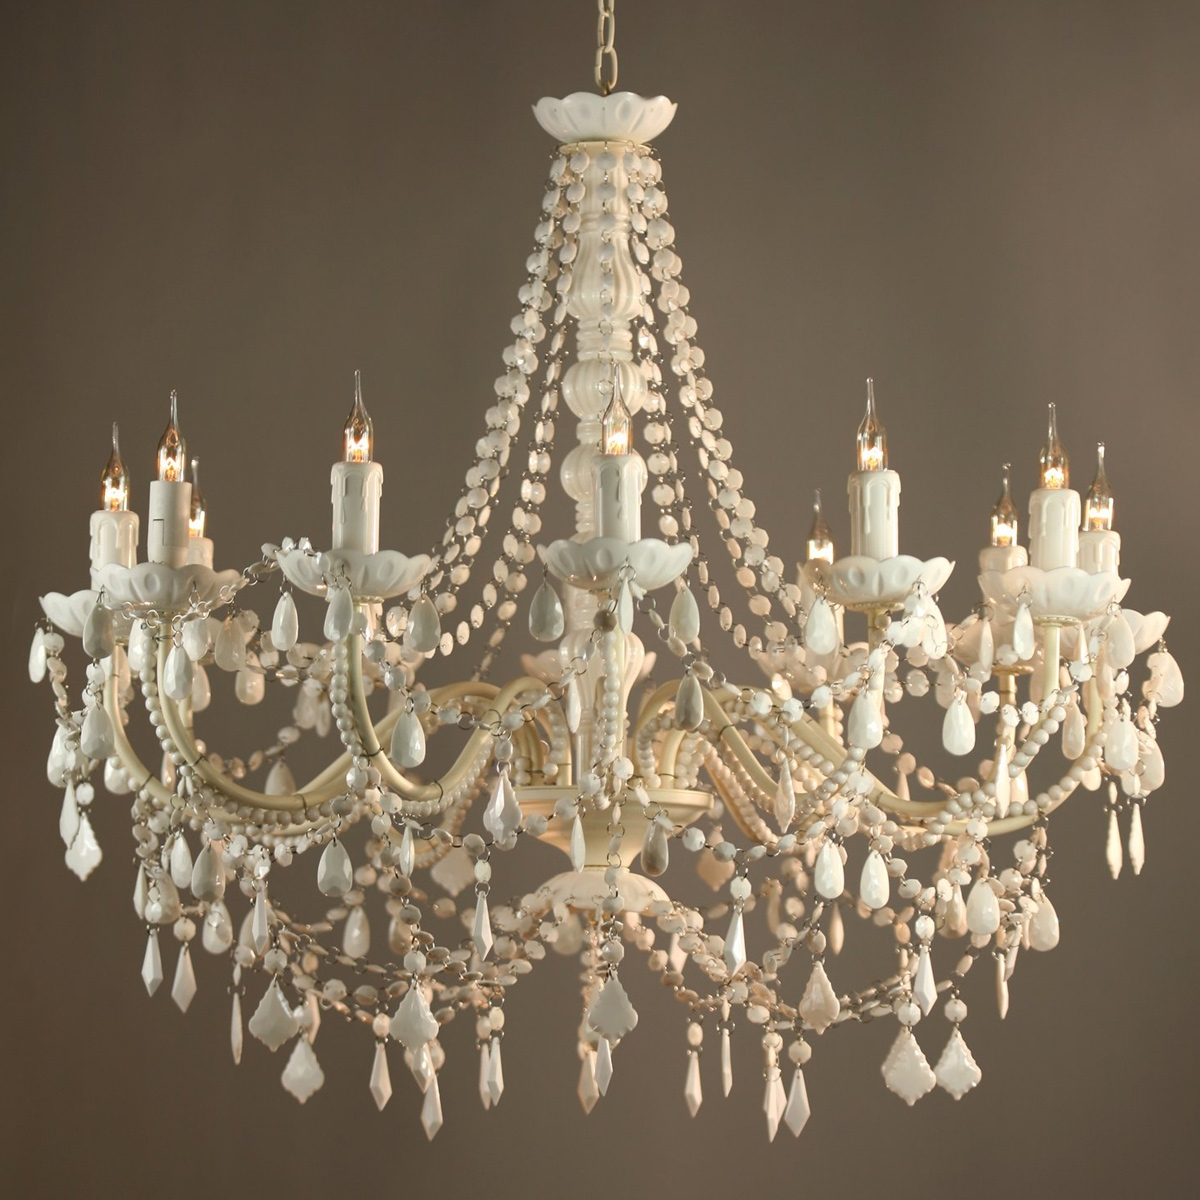 French Chandeliers Stunning For Small Home Decoration Ideas With With French Chandeliers (Image 11 of 15)